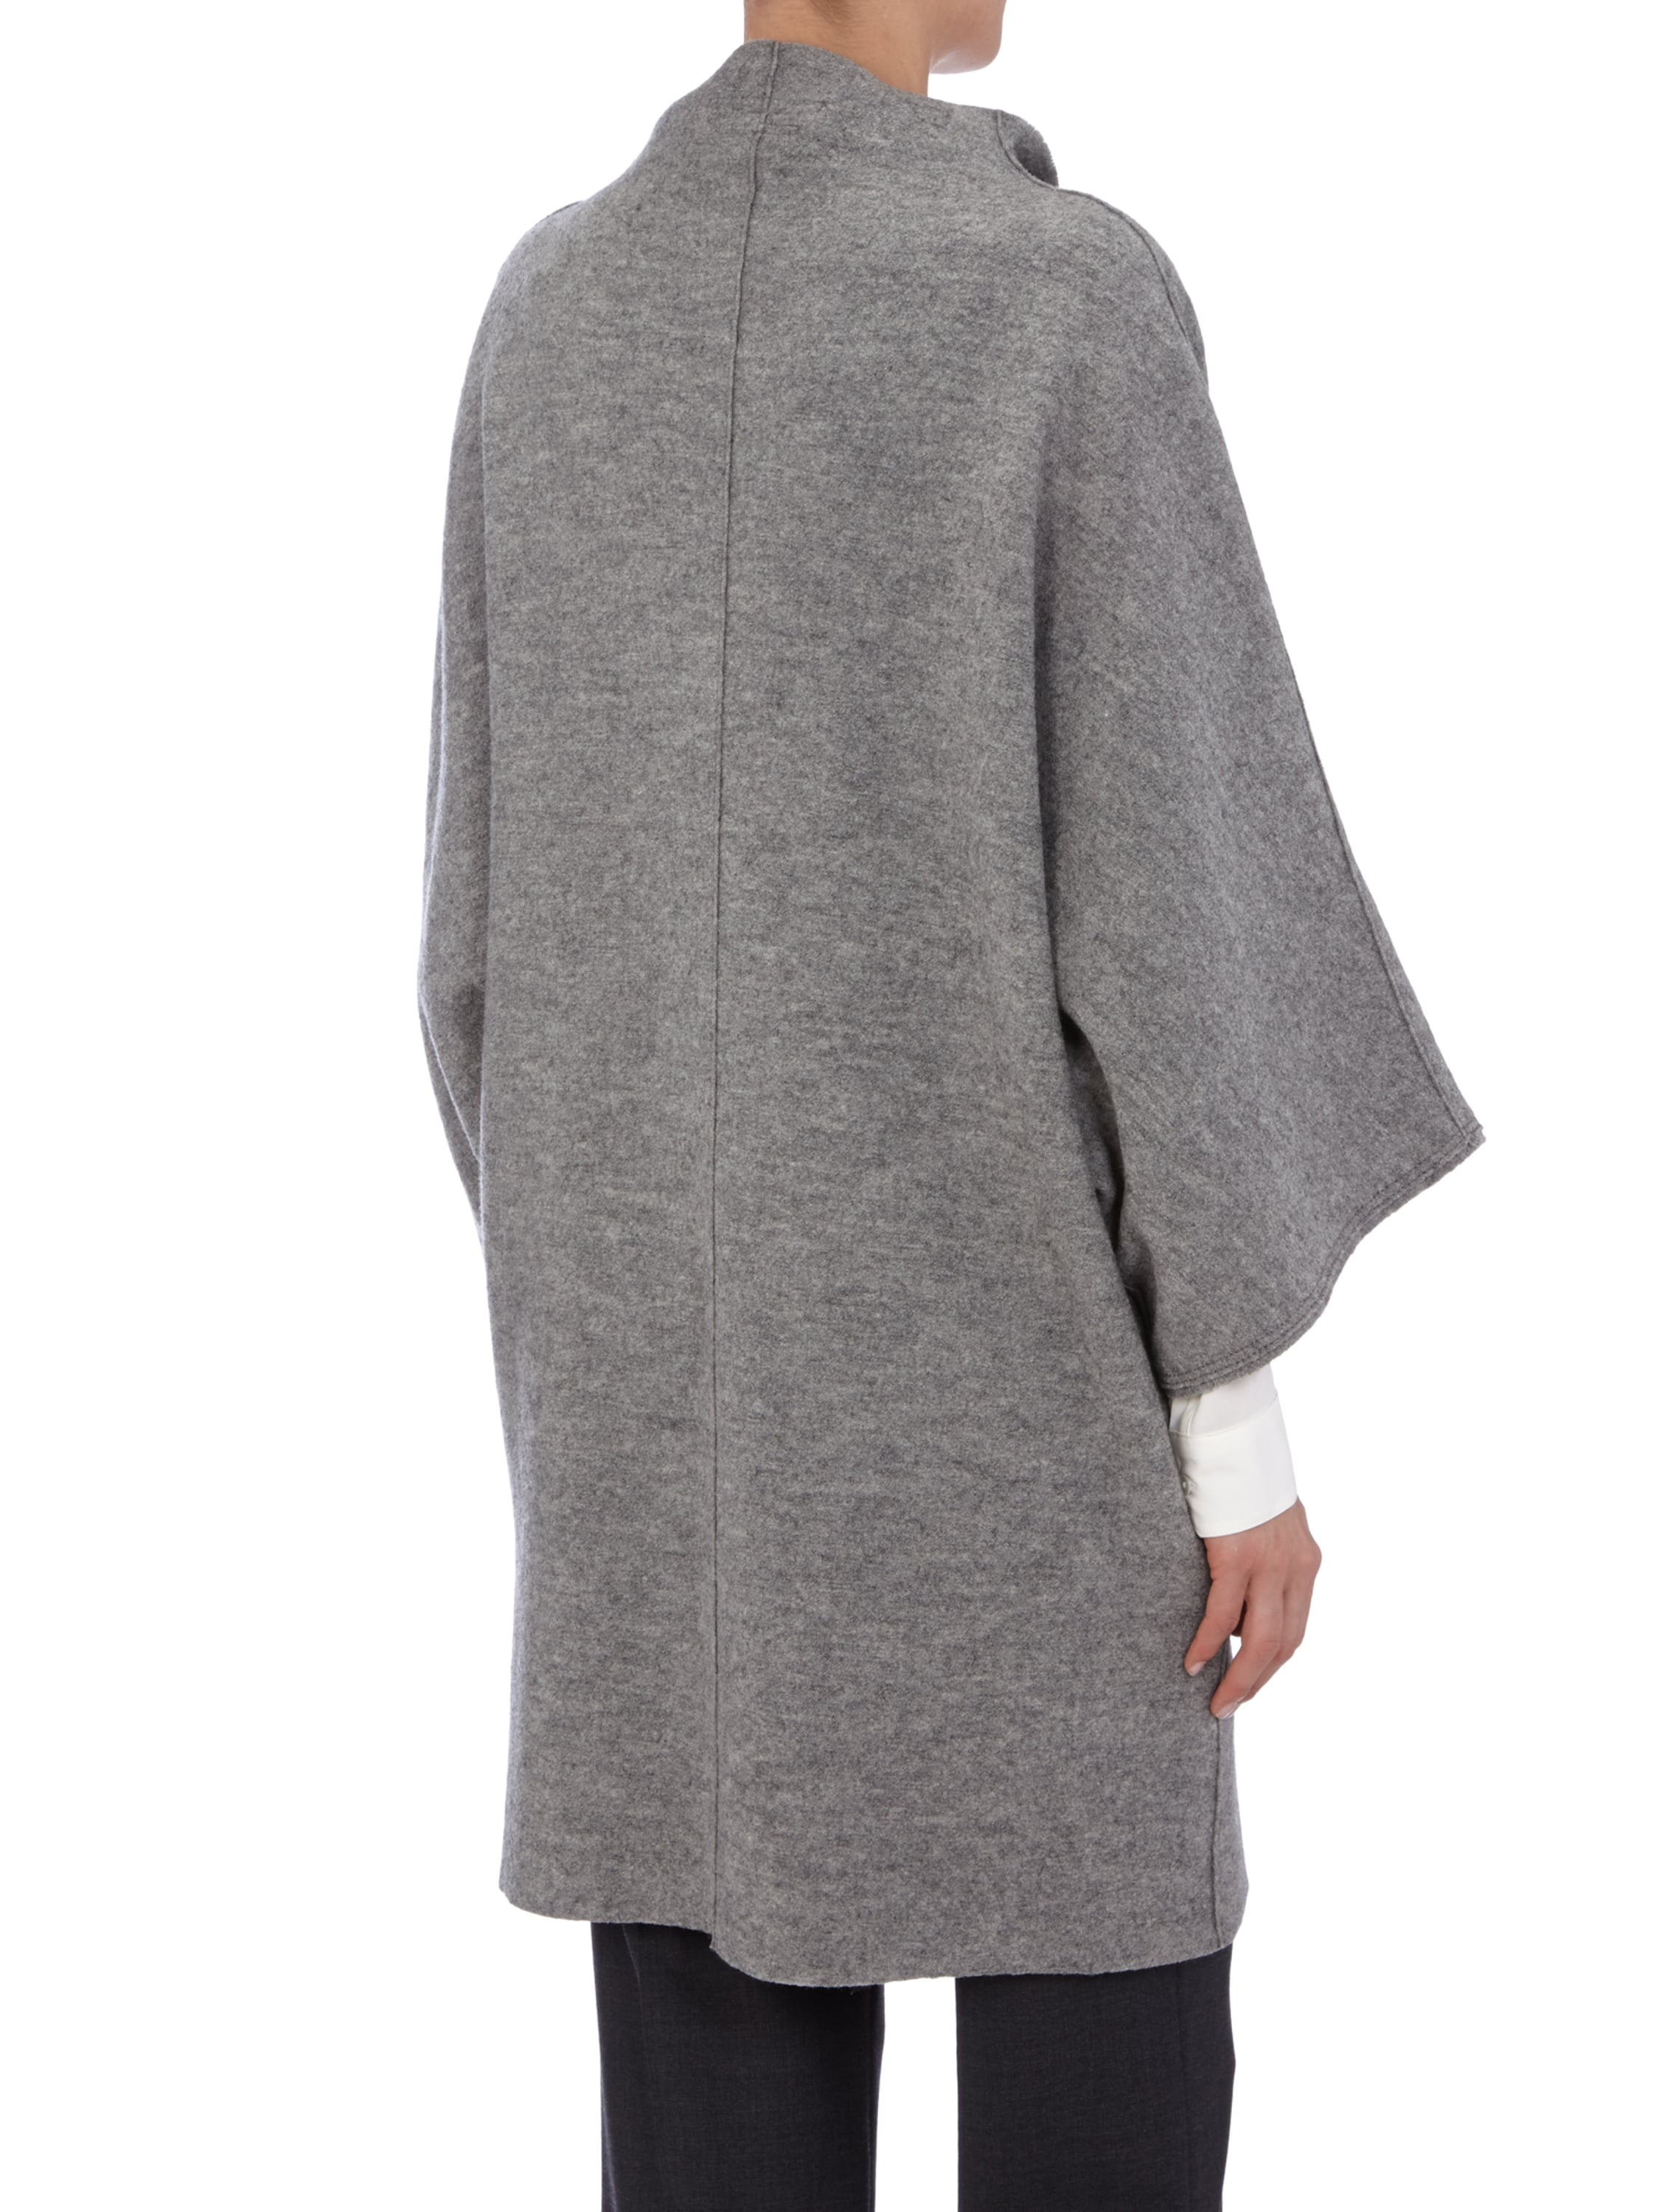 Oversize mantel aus reiner wolle fashion id online shop for Oversize mantel damen